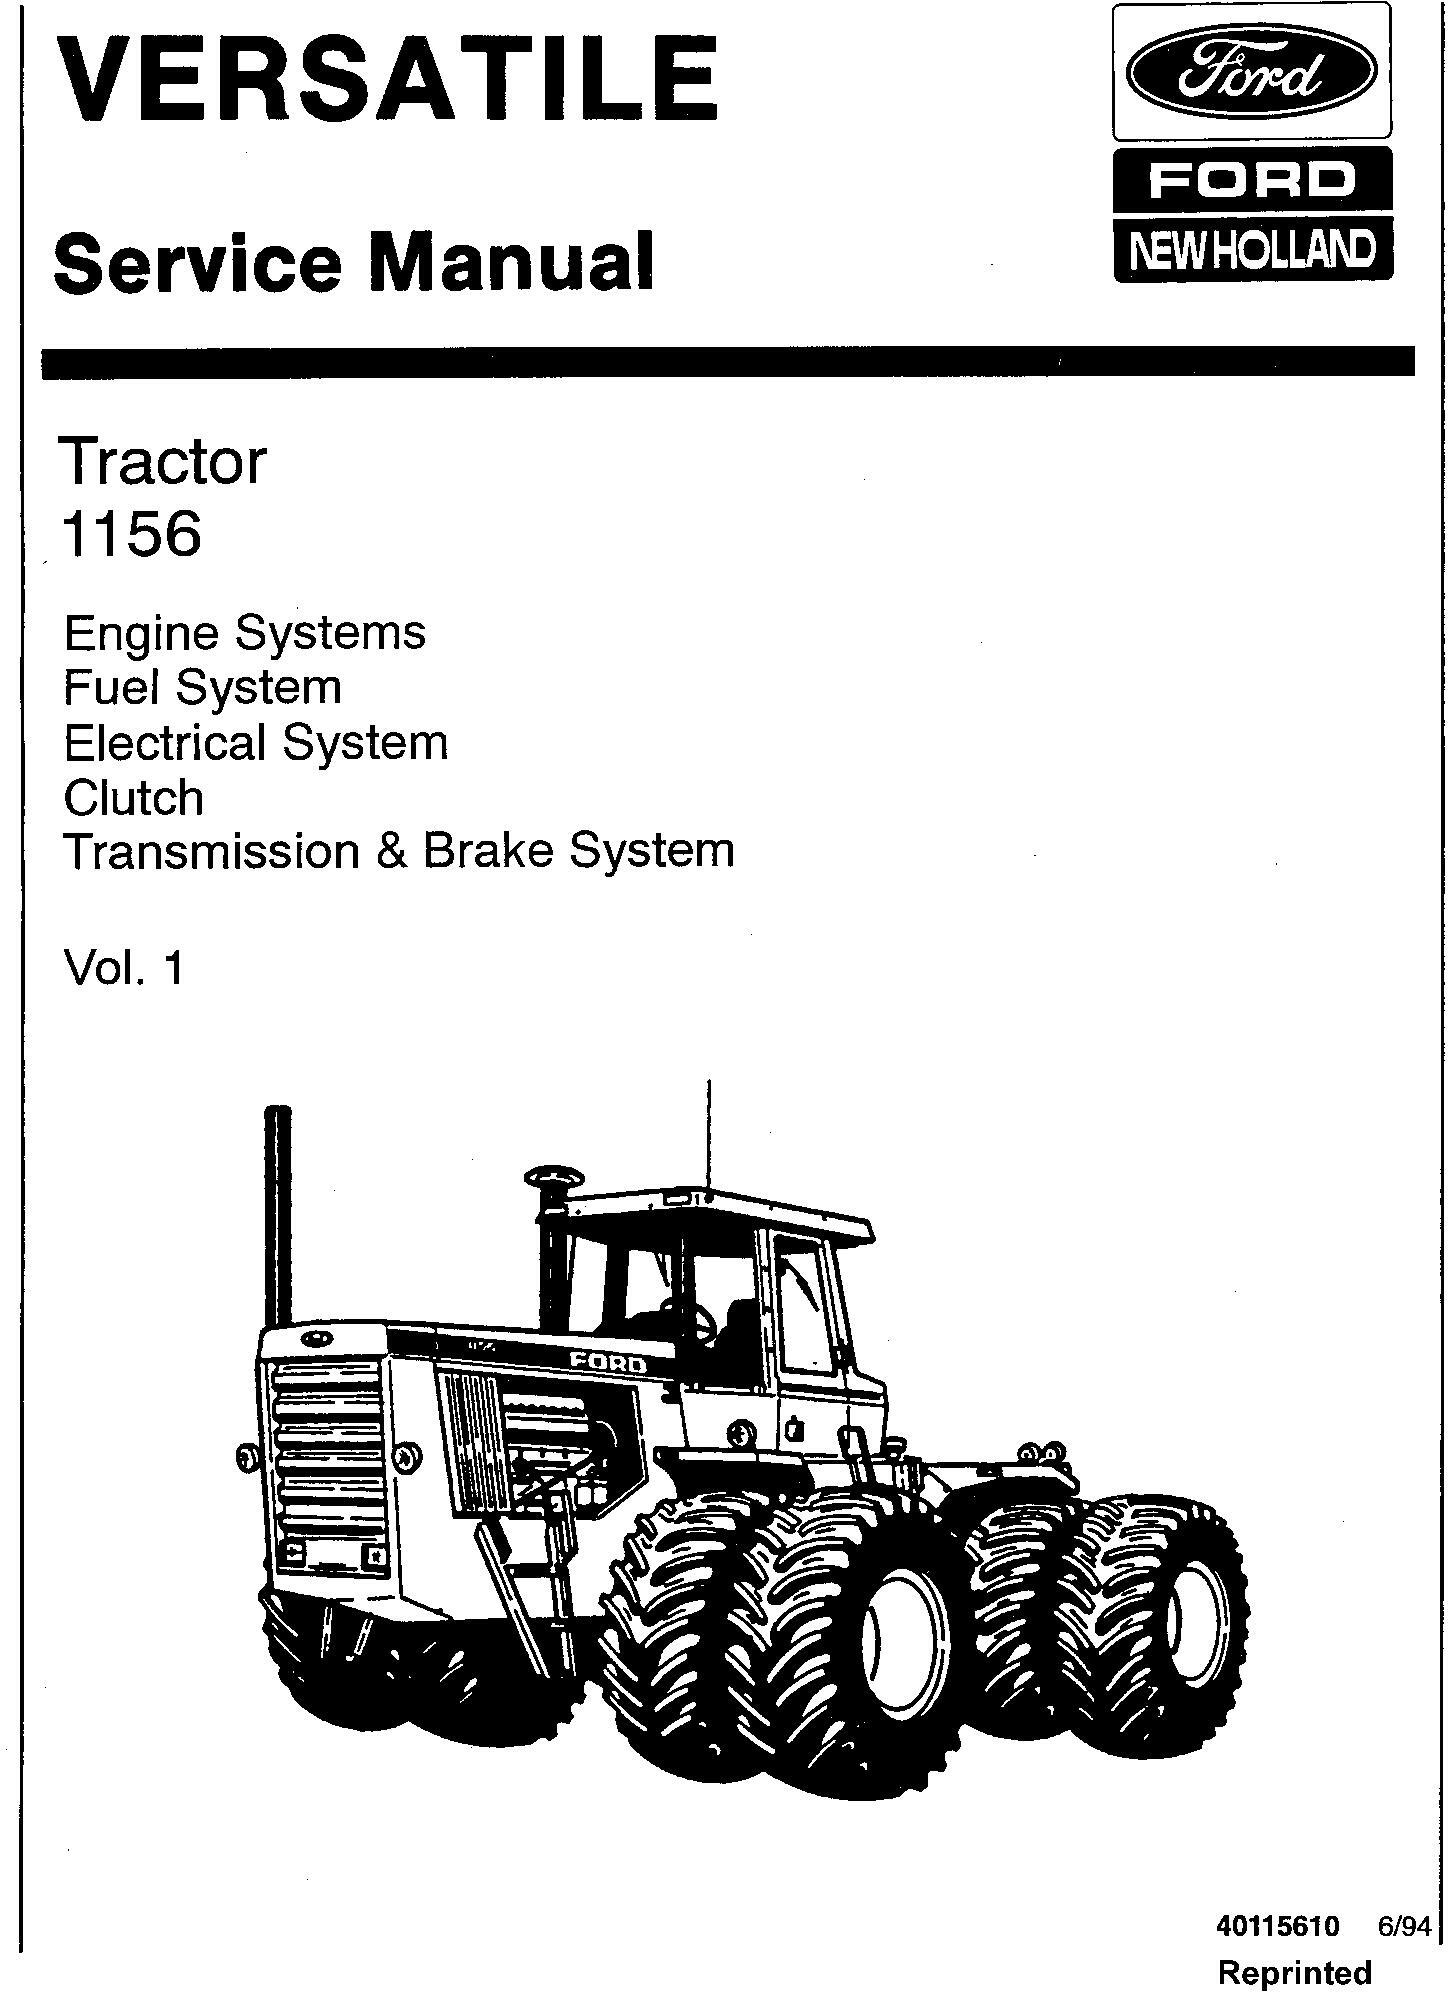 Ford Versatile 1156 Tractor Complete Service Manual